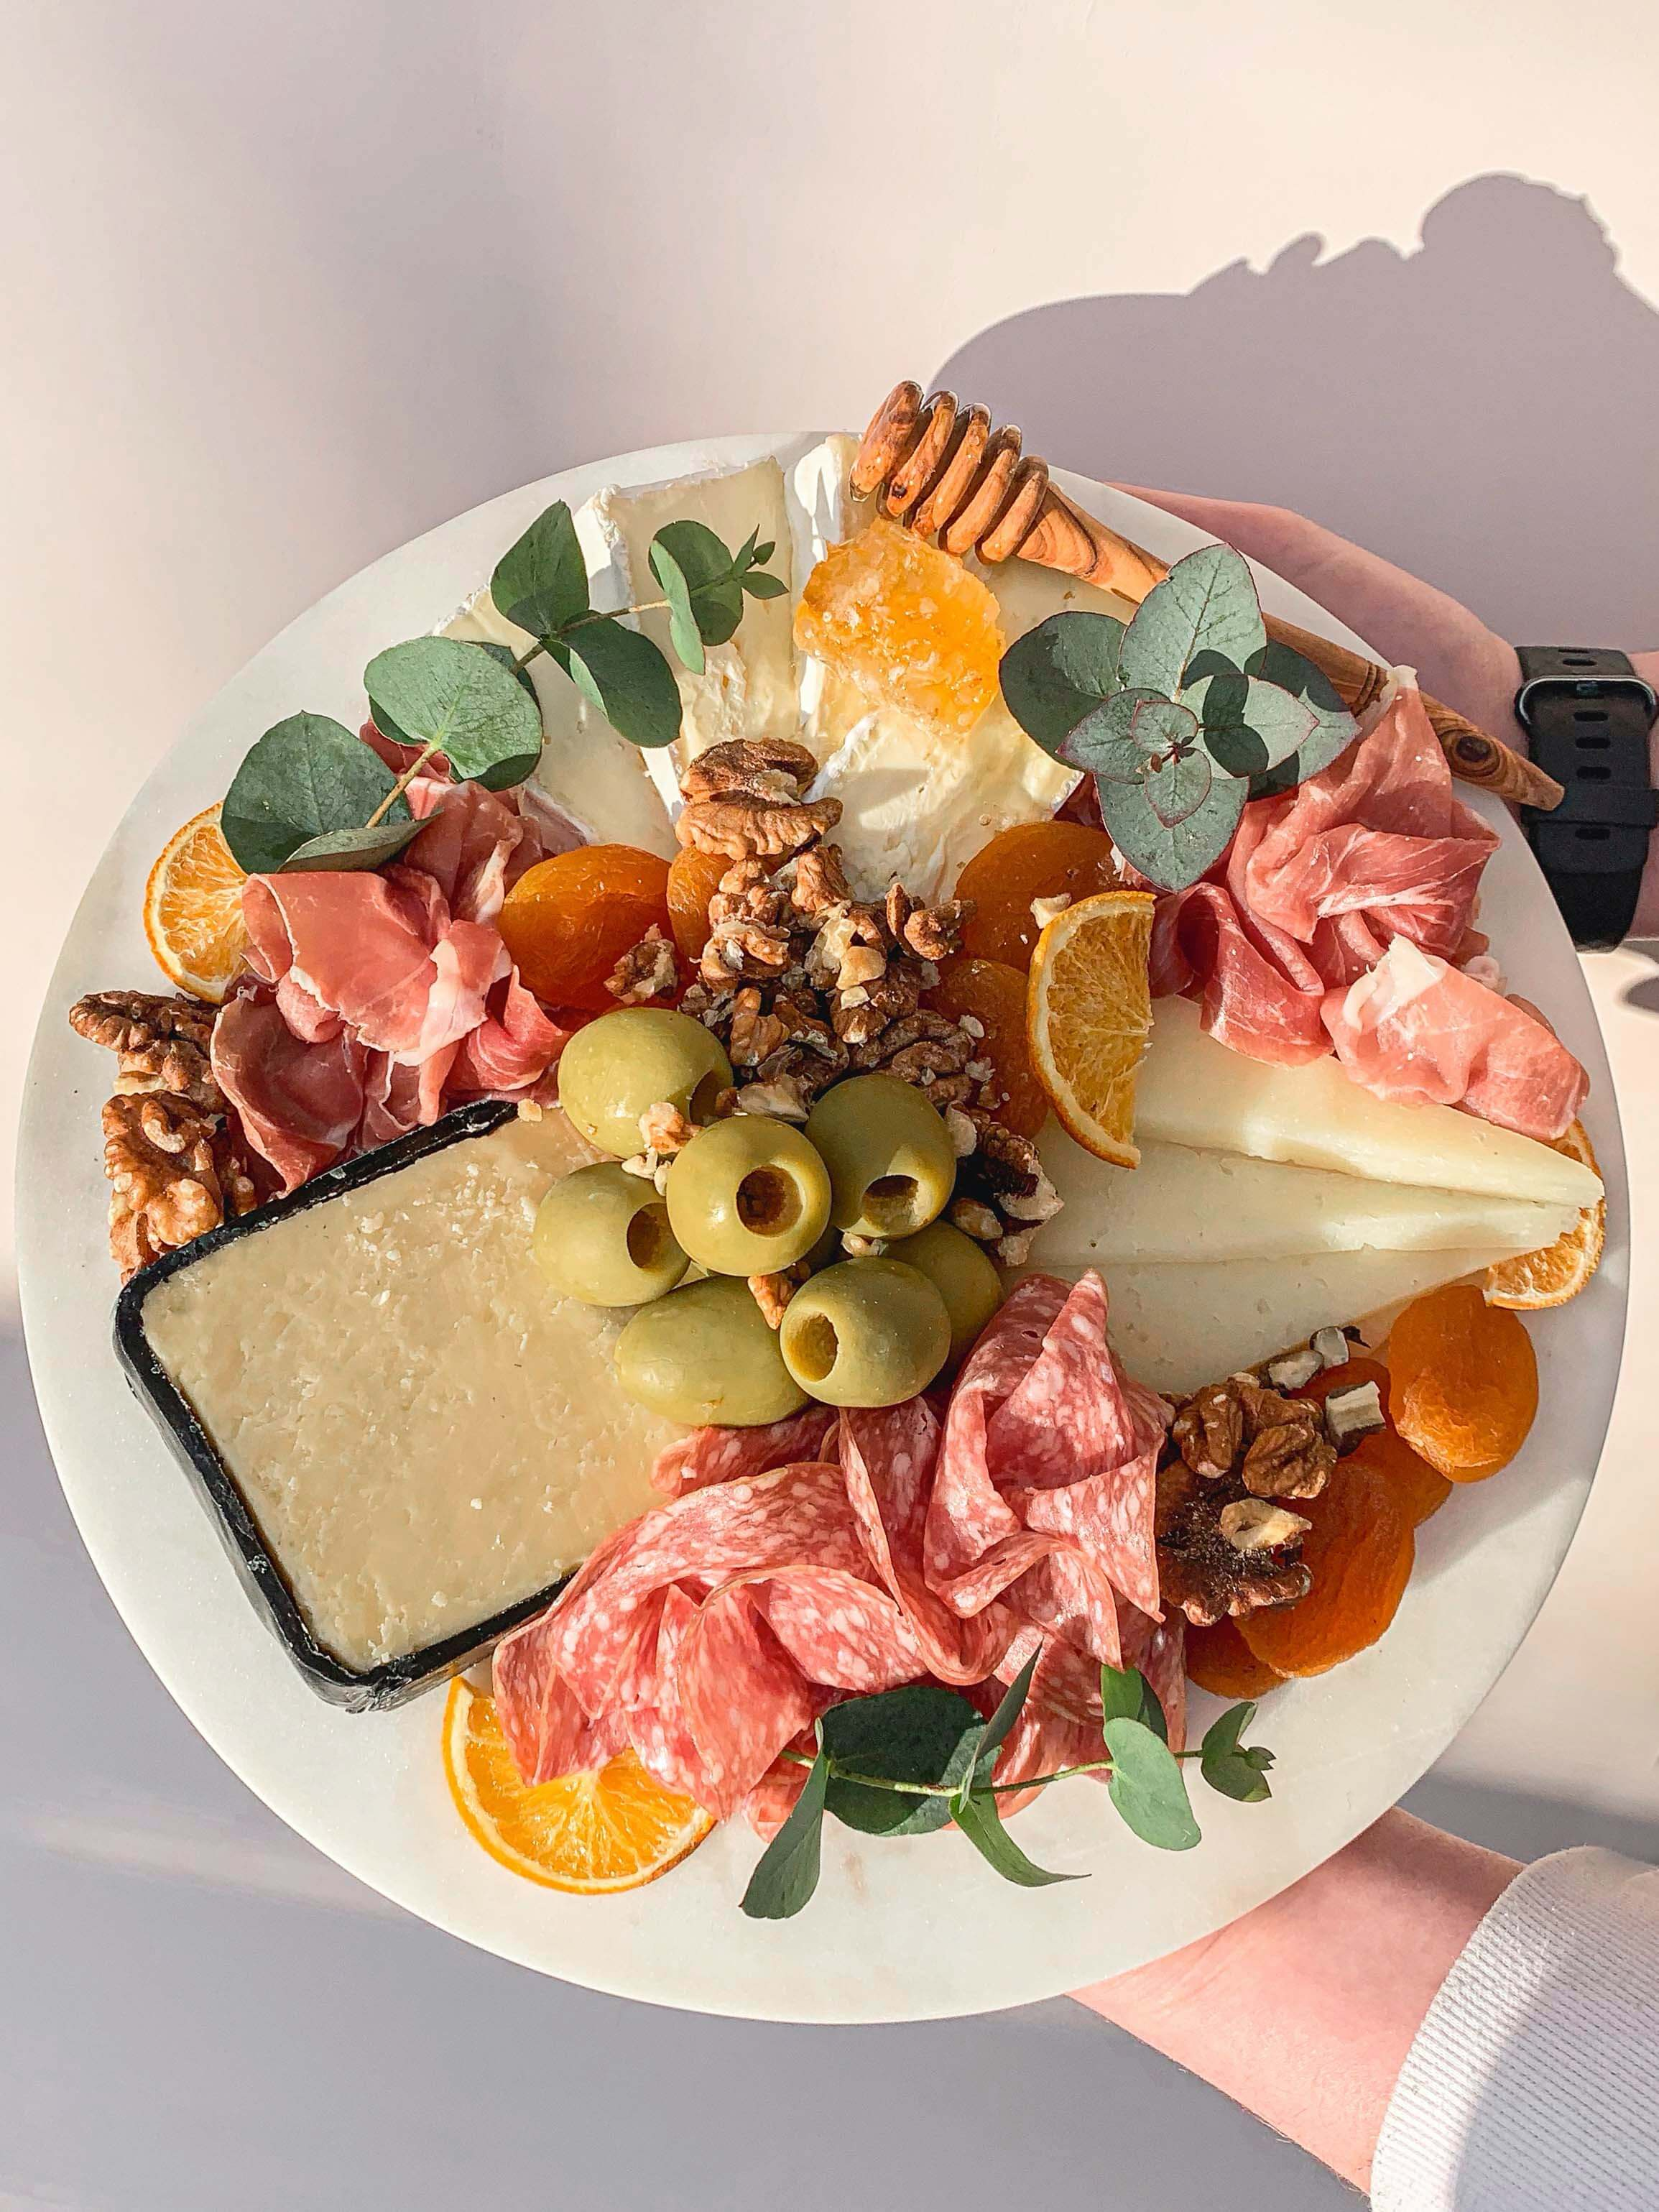 DIY platter, cheese charctuerie, antipasti, nuts olives kit available in Edinburgh